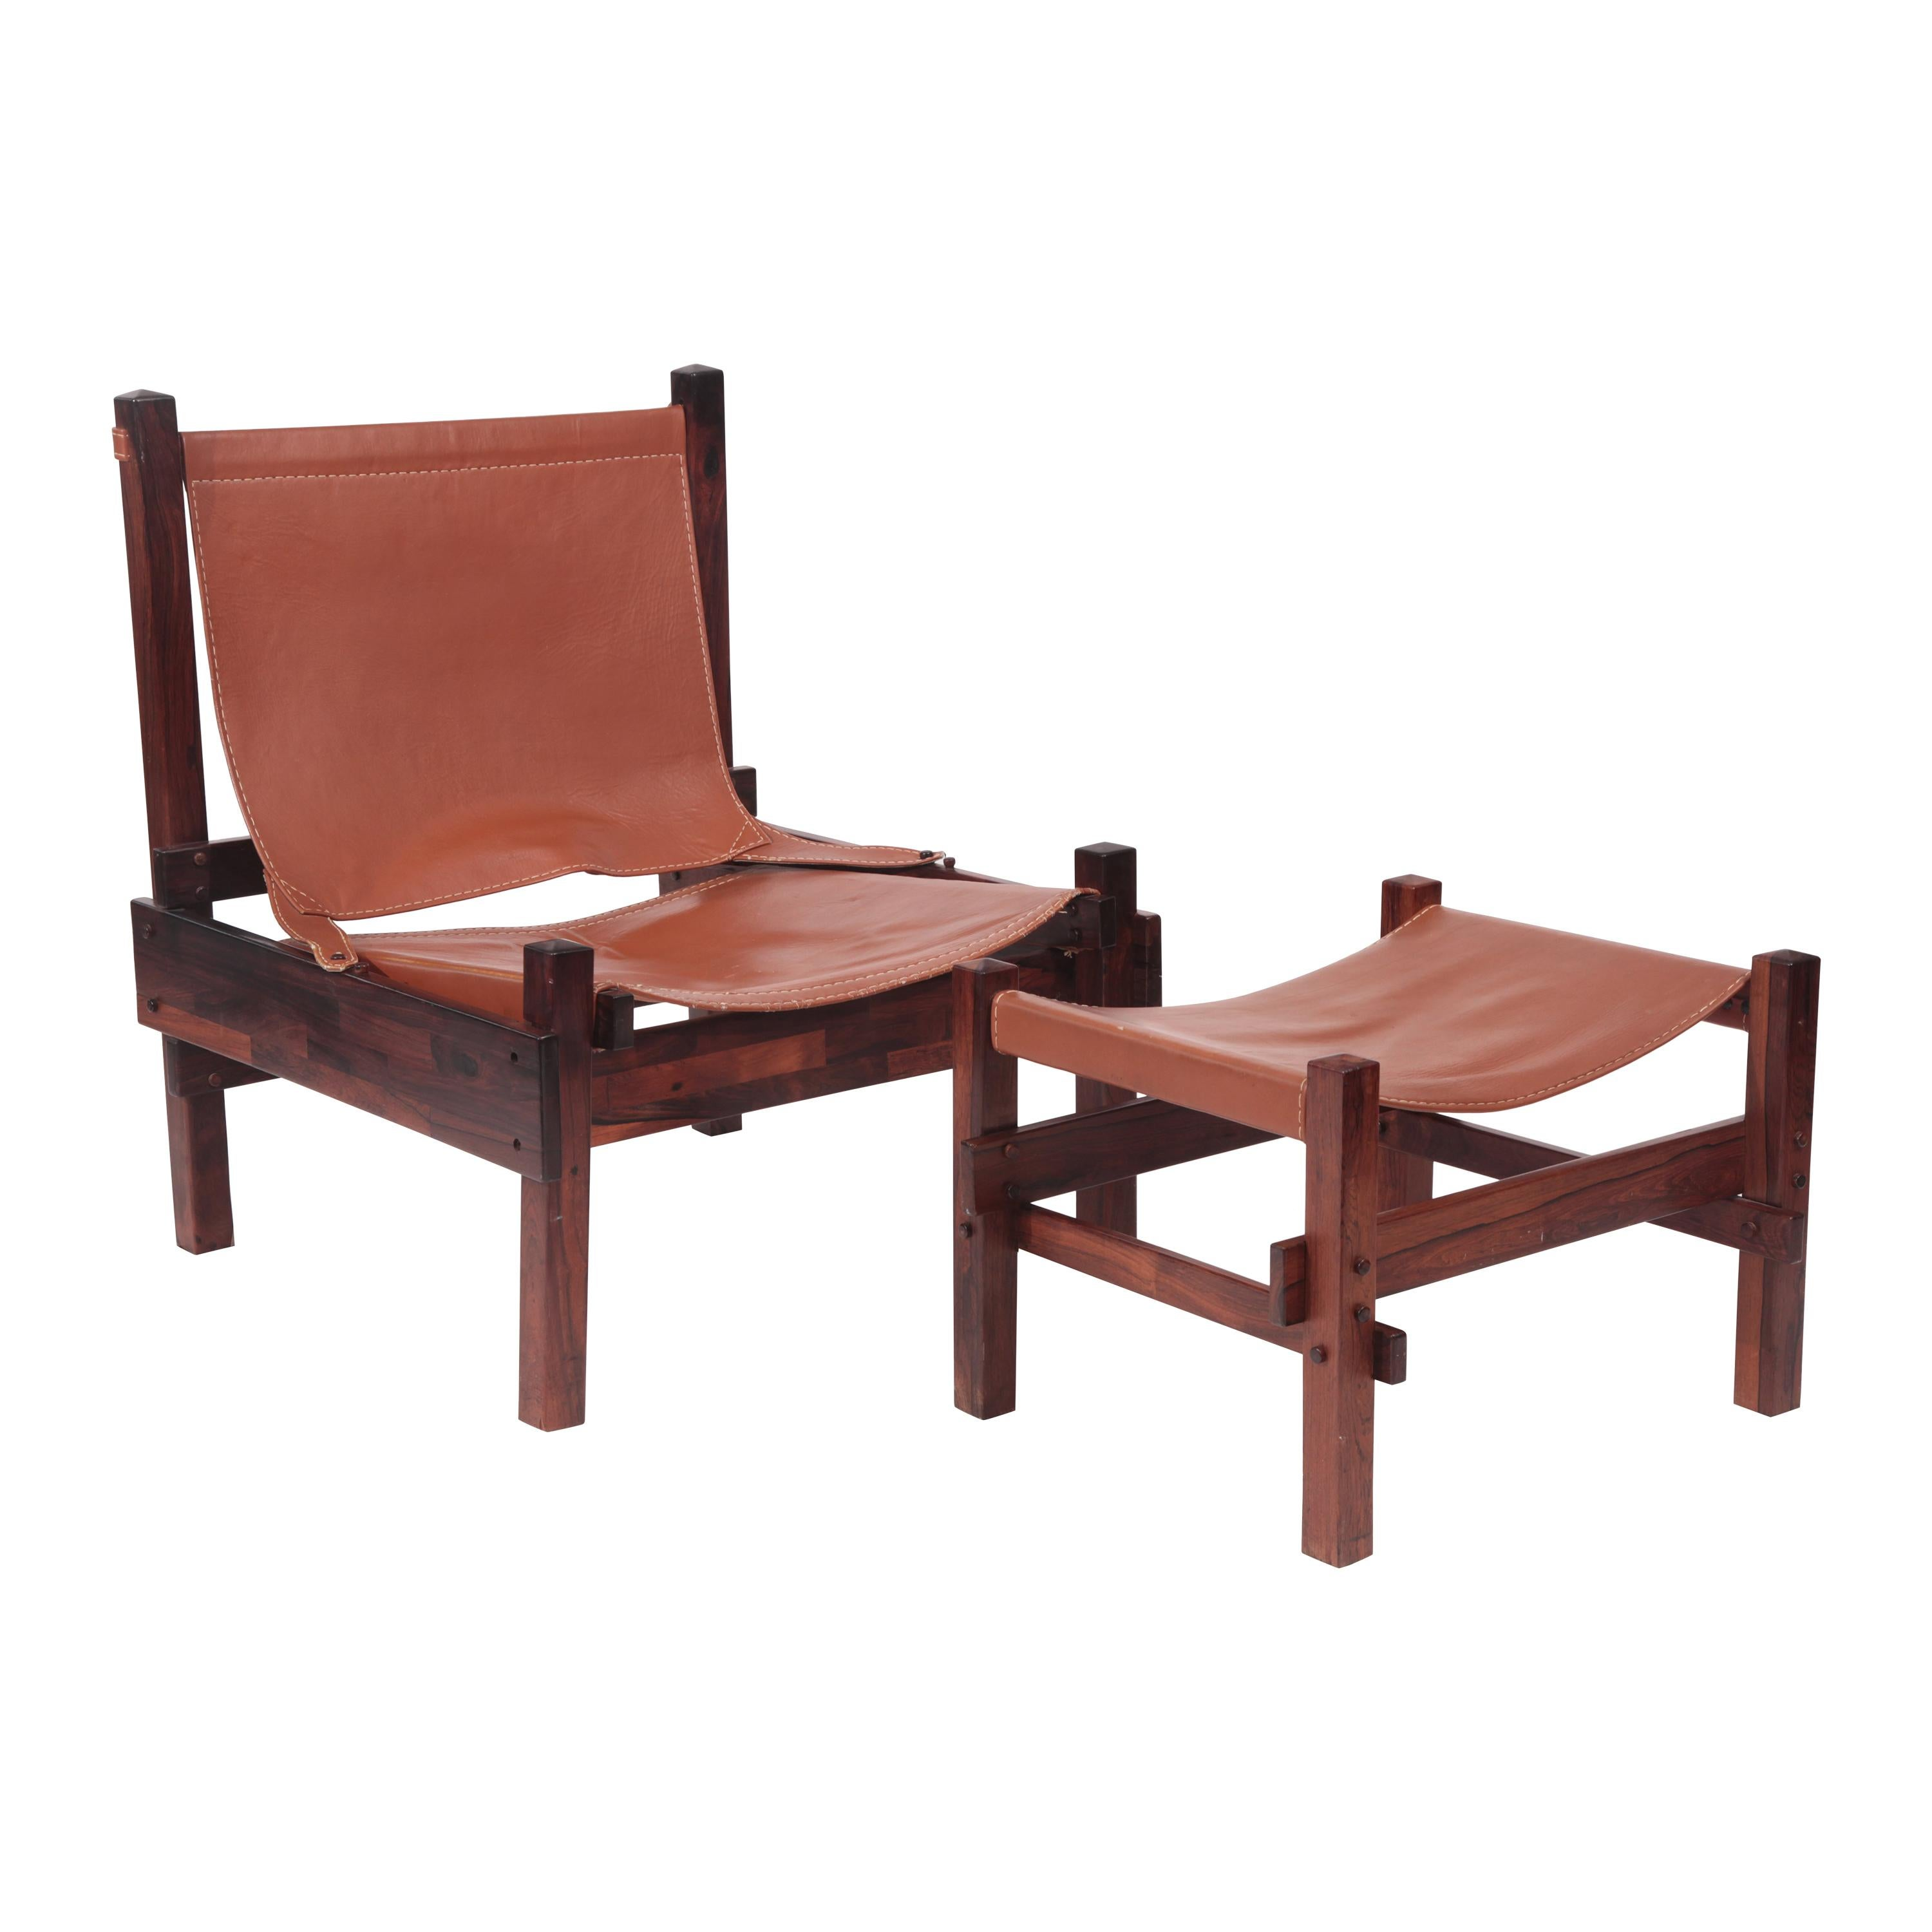 Brazilian Rosewood and Leather Chair and Ottoman